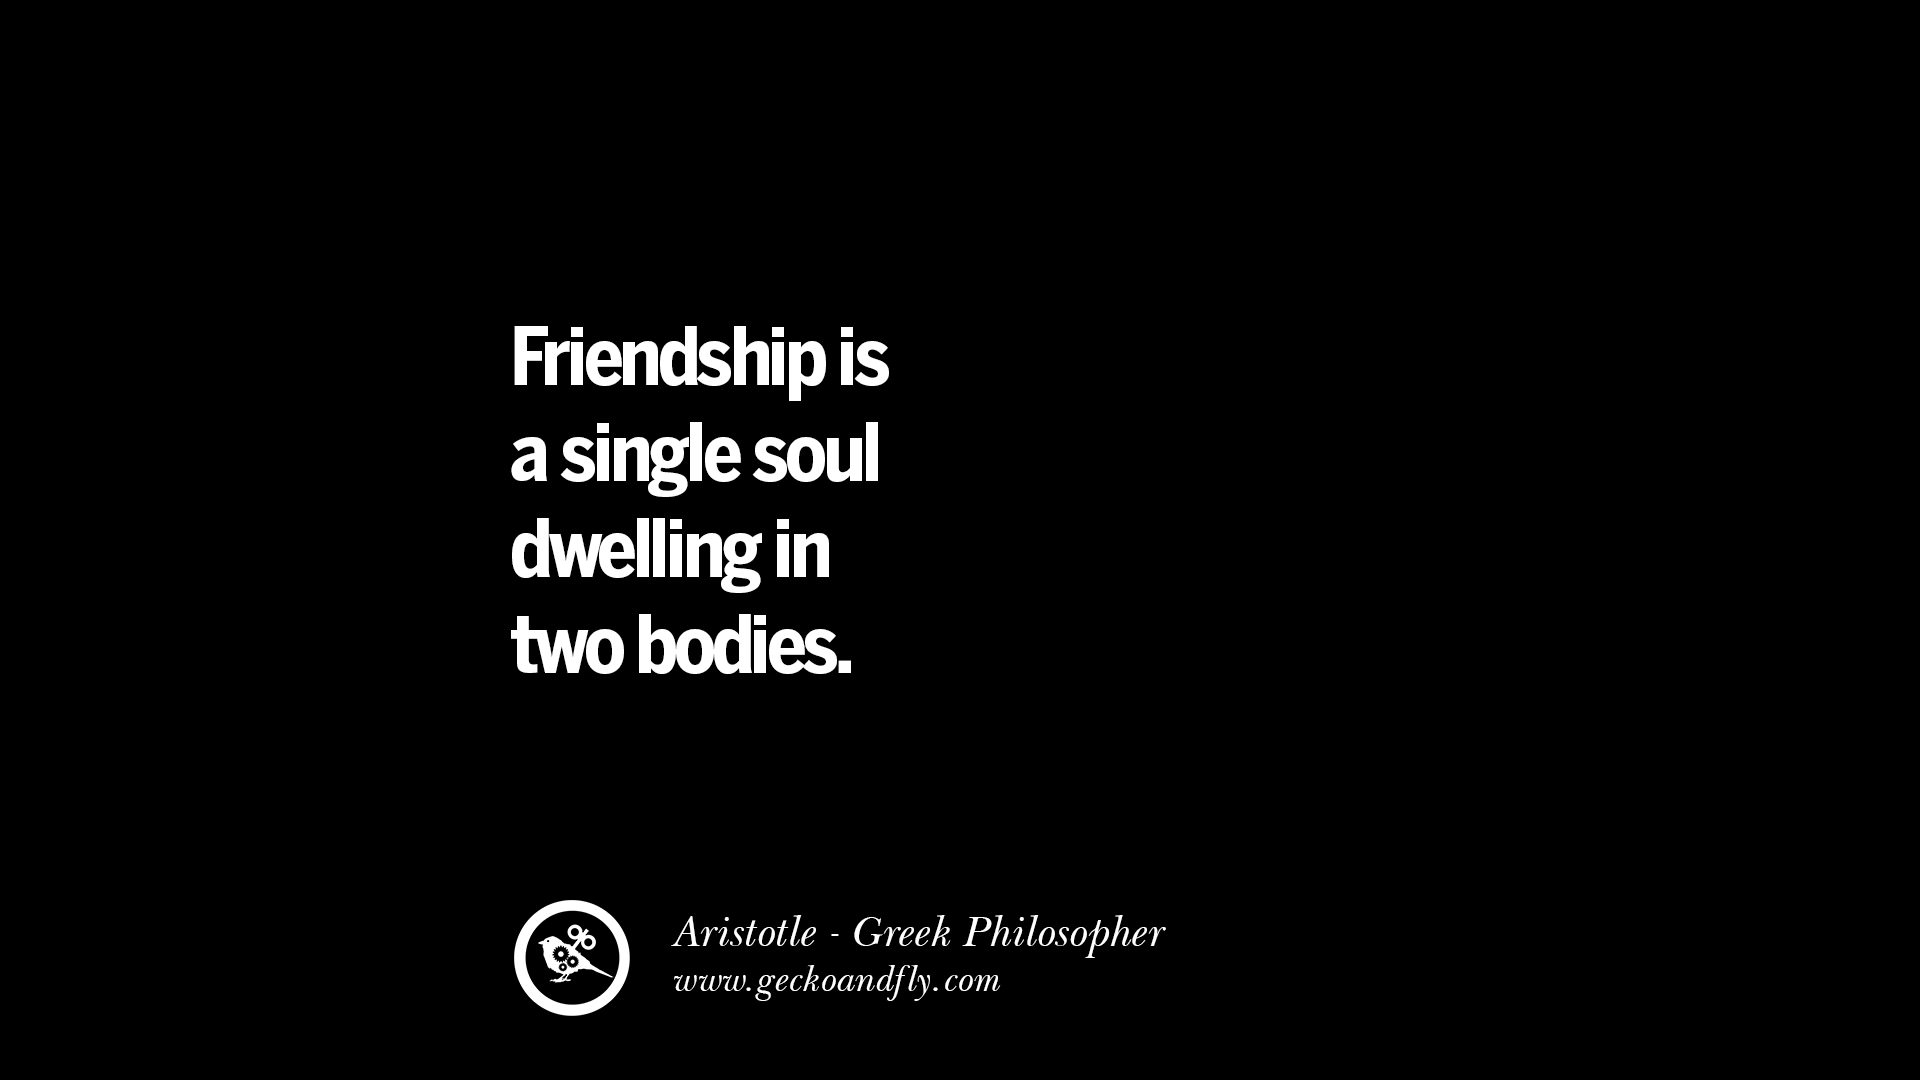 Great Quotes About Friendship 40 Famous Aristotle Quotes On Ethics Love Life Politics And